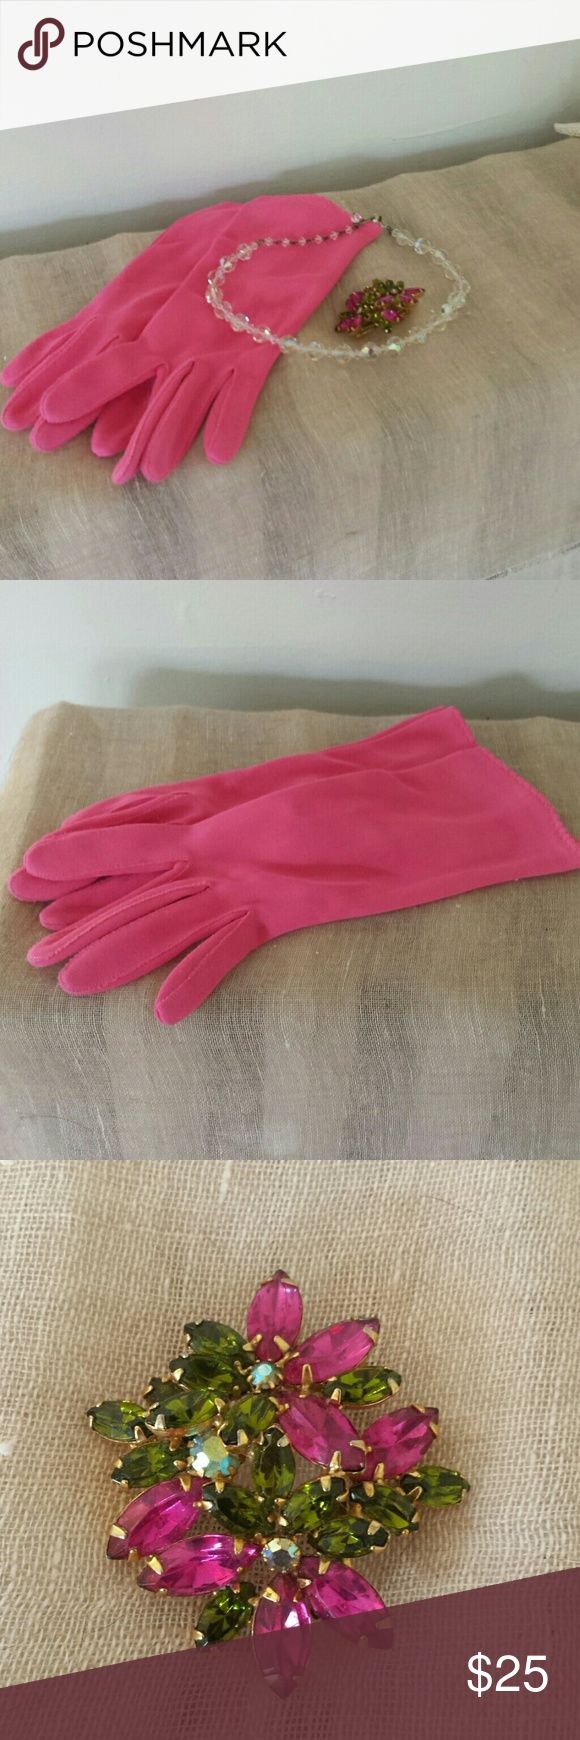 """Vintage pink gloves, jeweled pin, crystal choker Elsa Schiaparelli made shocking pink a style item, and these short gloves with scalloped hem will make their own statement.  Also included is a jeweled brooch in pink and green for a sweater, jacket, dress or hat accent.  Crystal beaded choker is 16"""" long with a hook clasp. Vintage Accessories"""